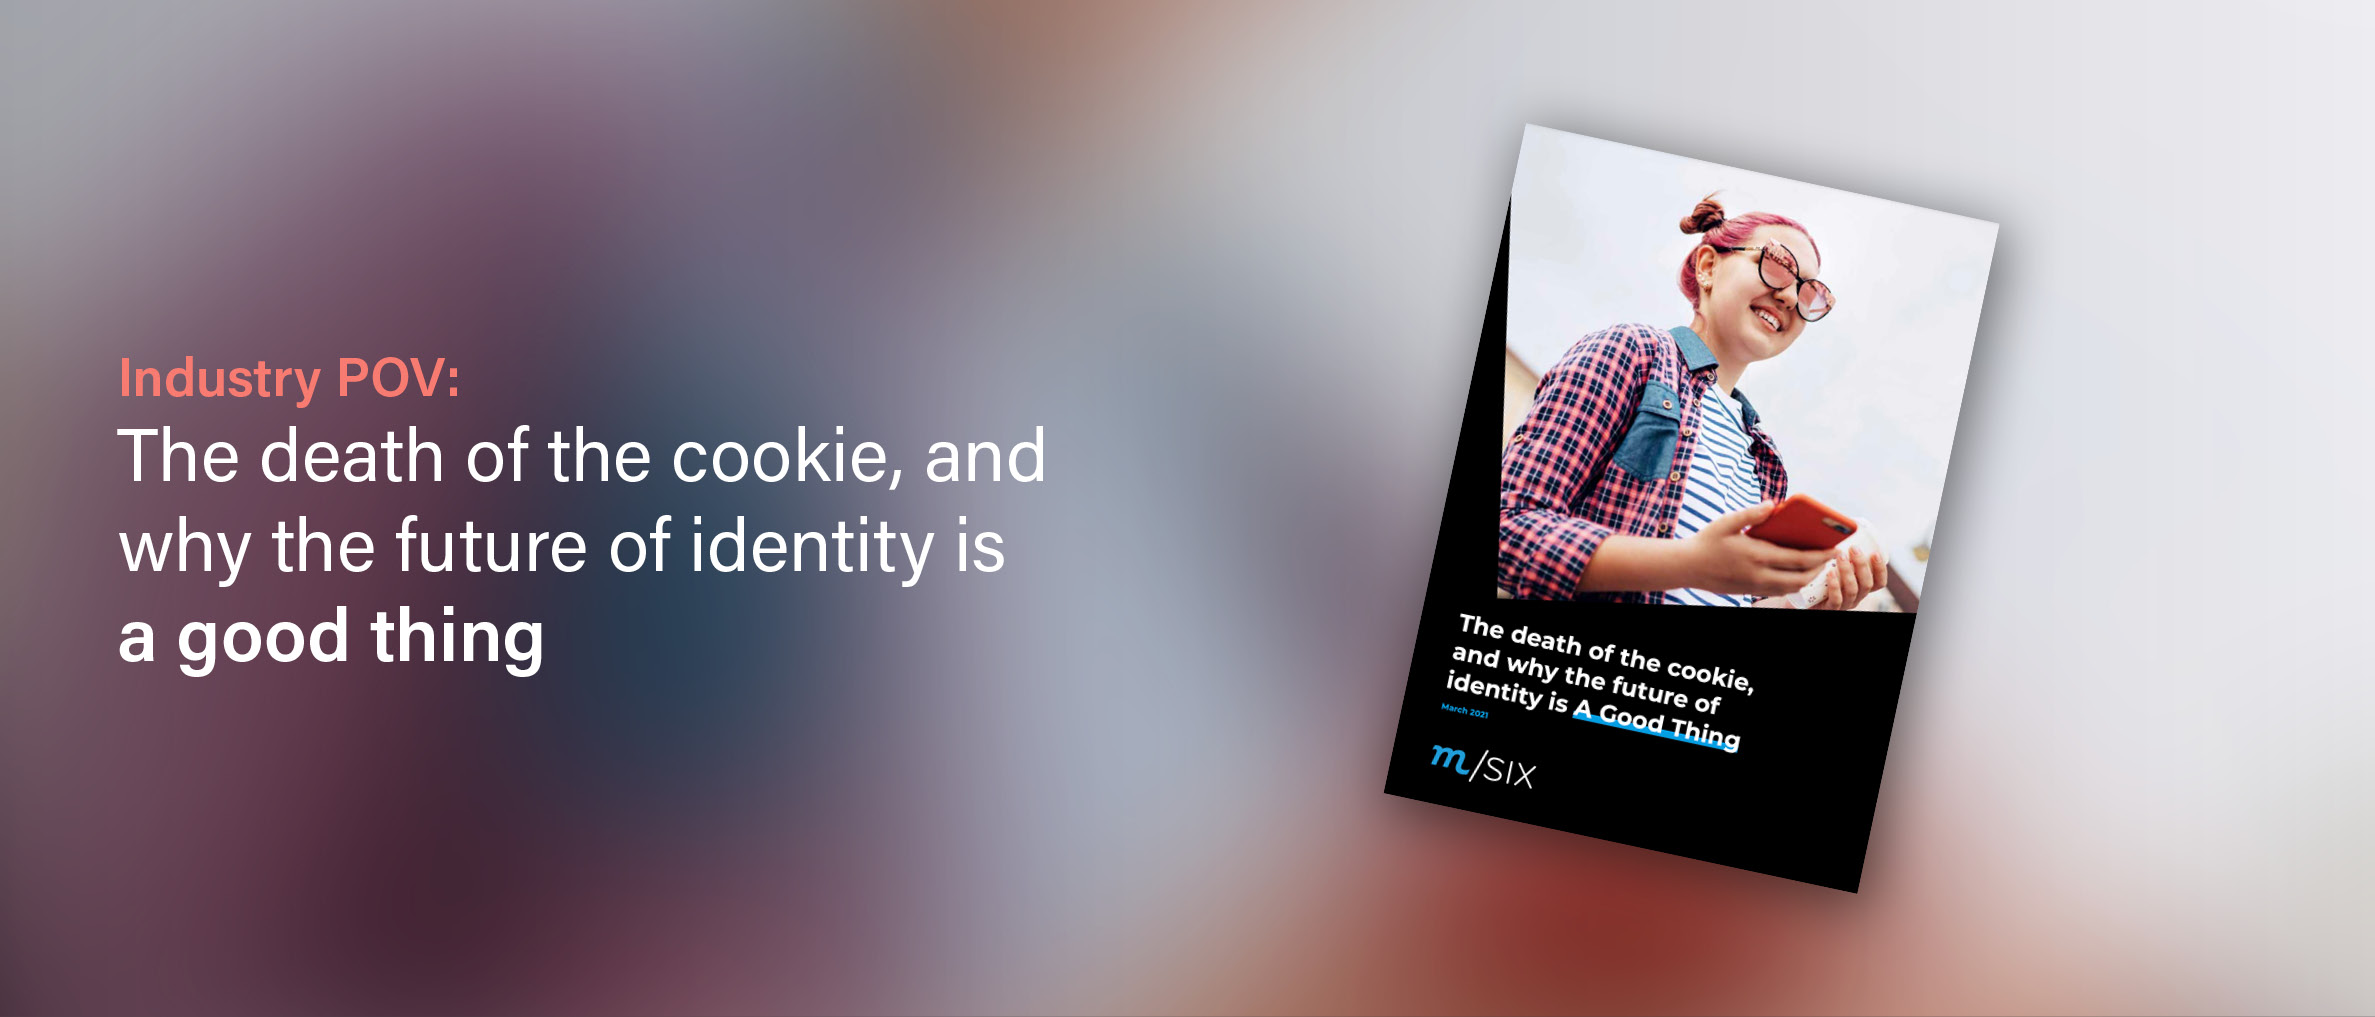 m/SIX: The Death Of The Cookie, And Why The Future Of Identity Is A Good Thing